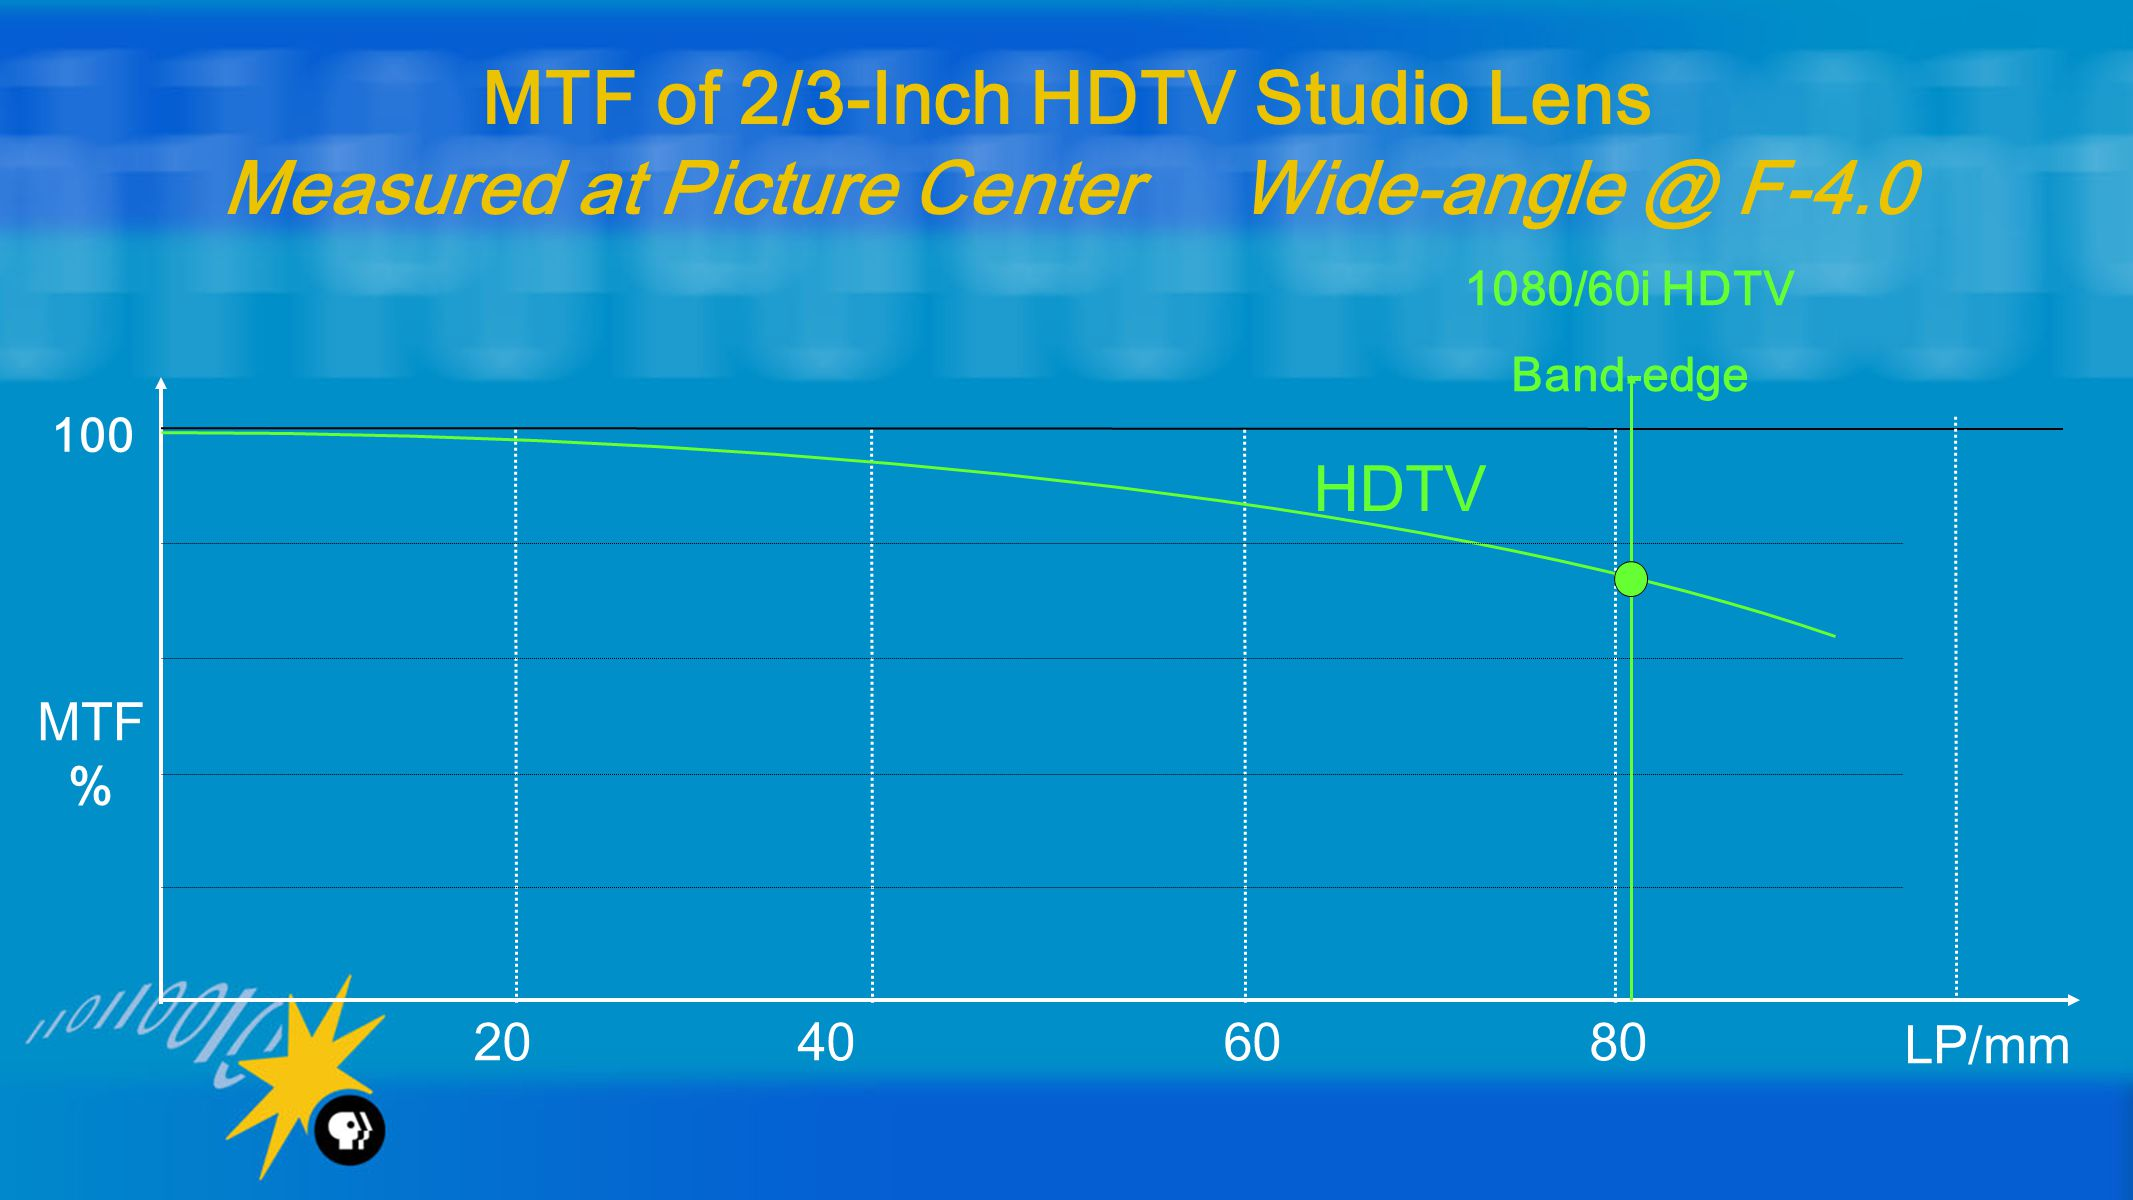 20 40 60 80 LP/mm 100 MTF % MTF of 2/3-Inch HDTV Studio Lens Measured at Picture Center Wide-angle @ F-4.0 HDTV 1080/60i HDTV Band-edge